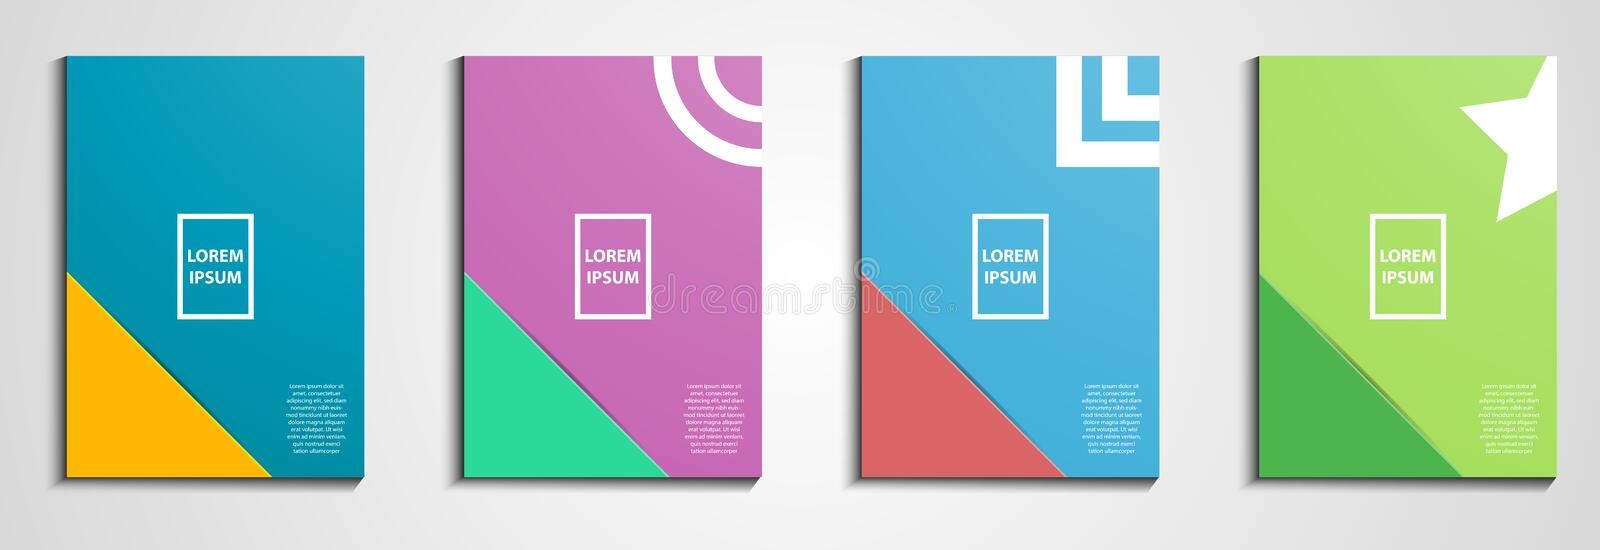 Annual report covers design. Notebook cover. Minimal geometric design. Eps10 illustration vector. Pastel color tone. Business and vector illustration